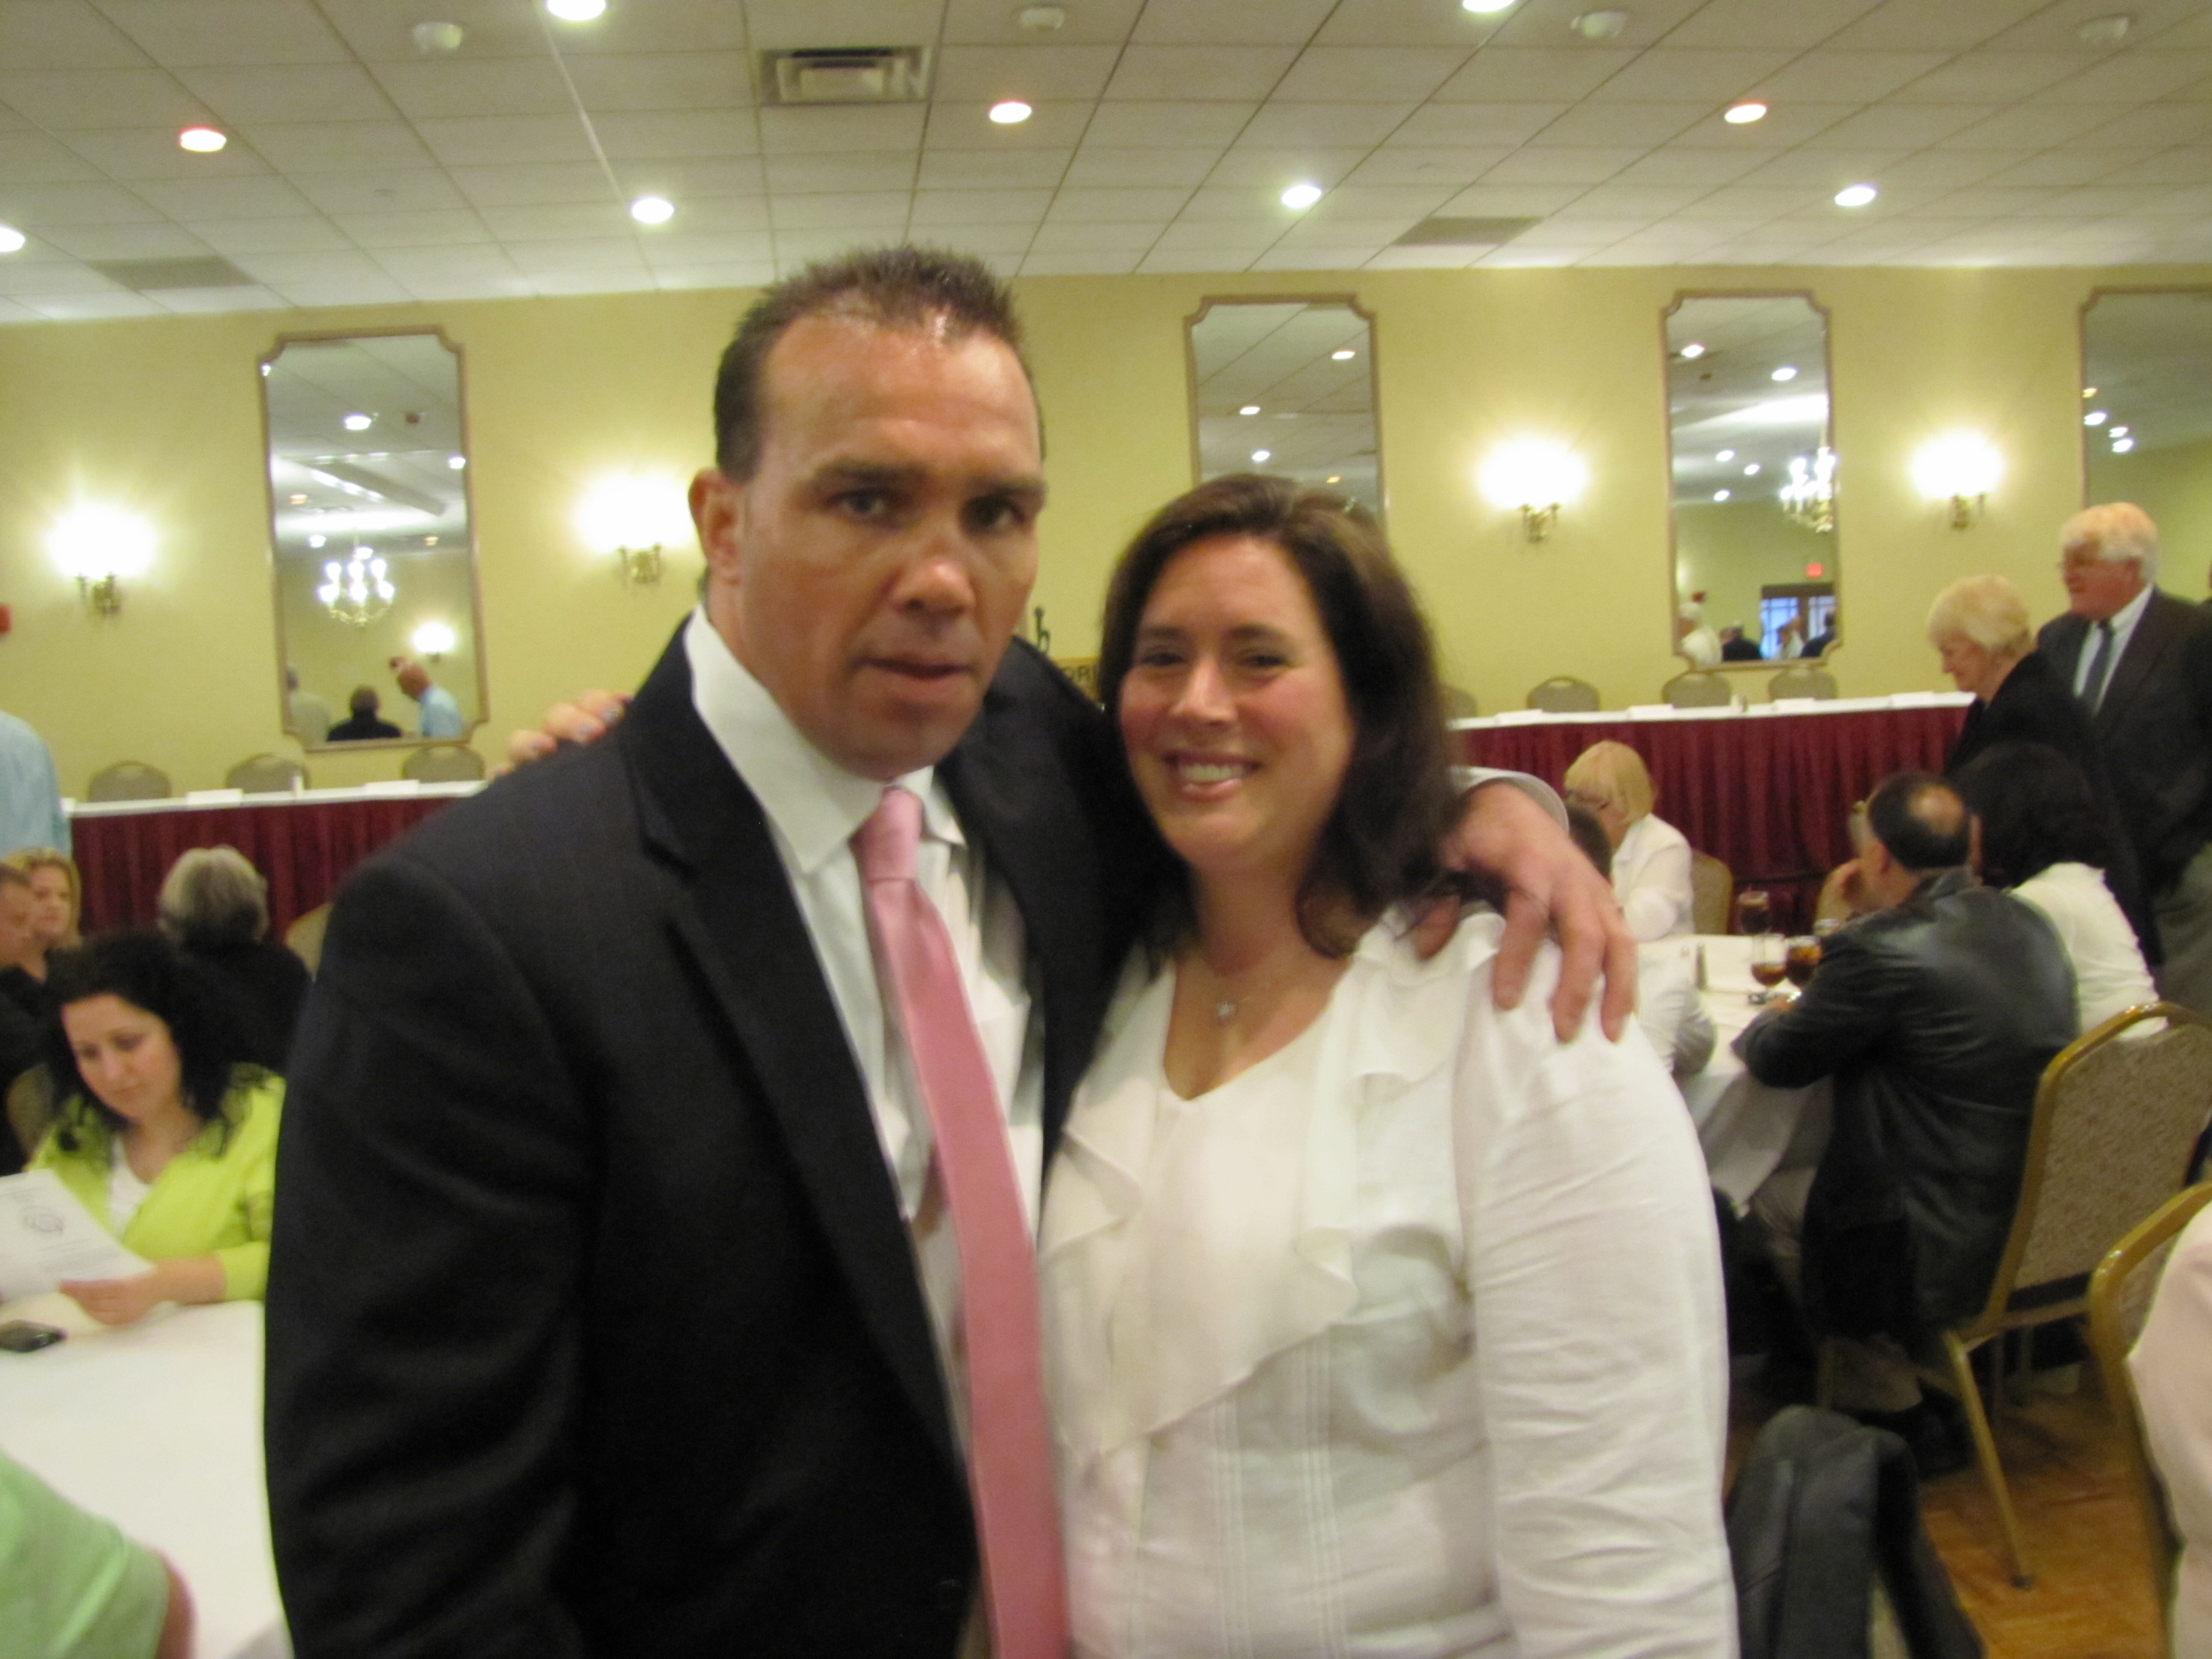 April 22, 2012 at Florian Hall, Dorchester, MA